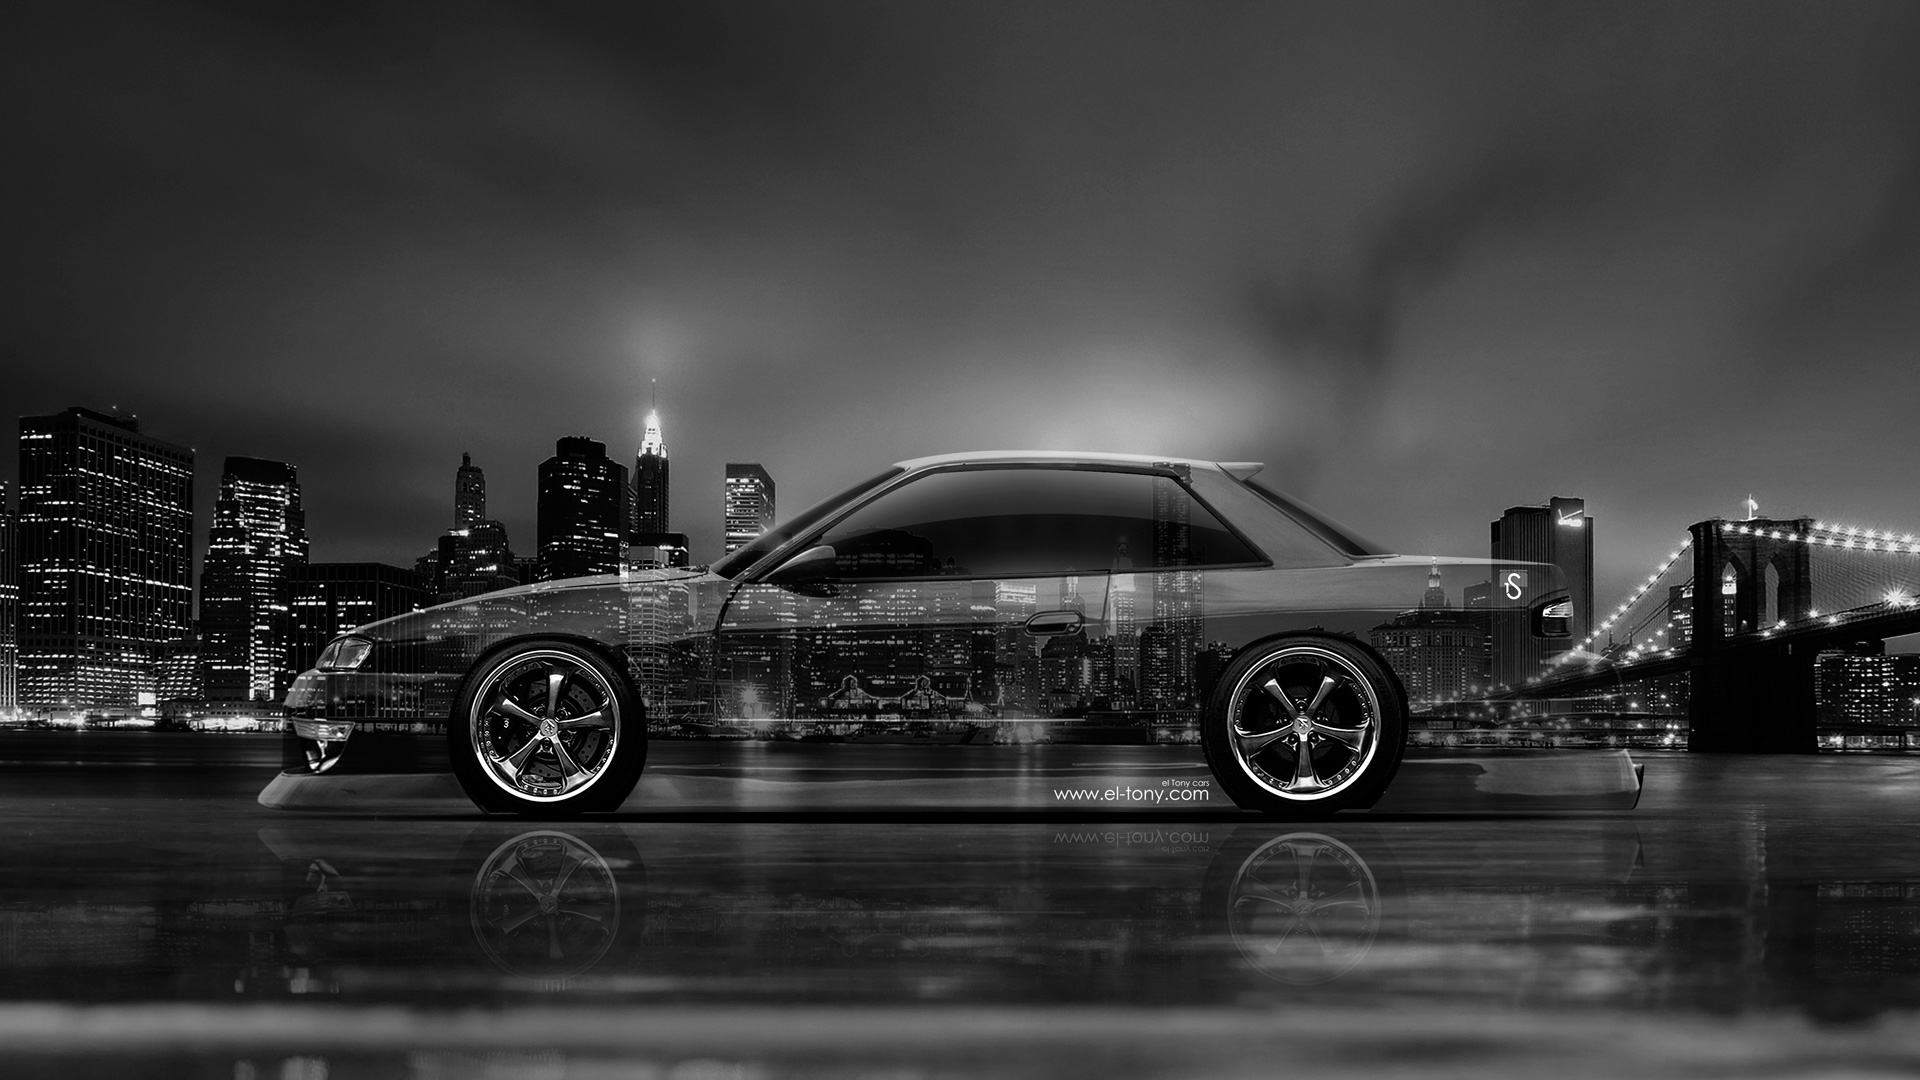 Nissan Silvia S13 JDM Side Crystal City Car 2014